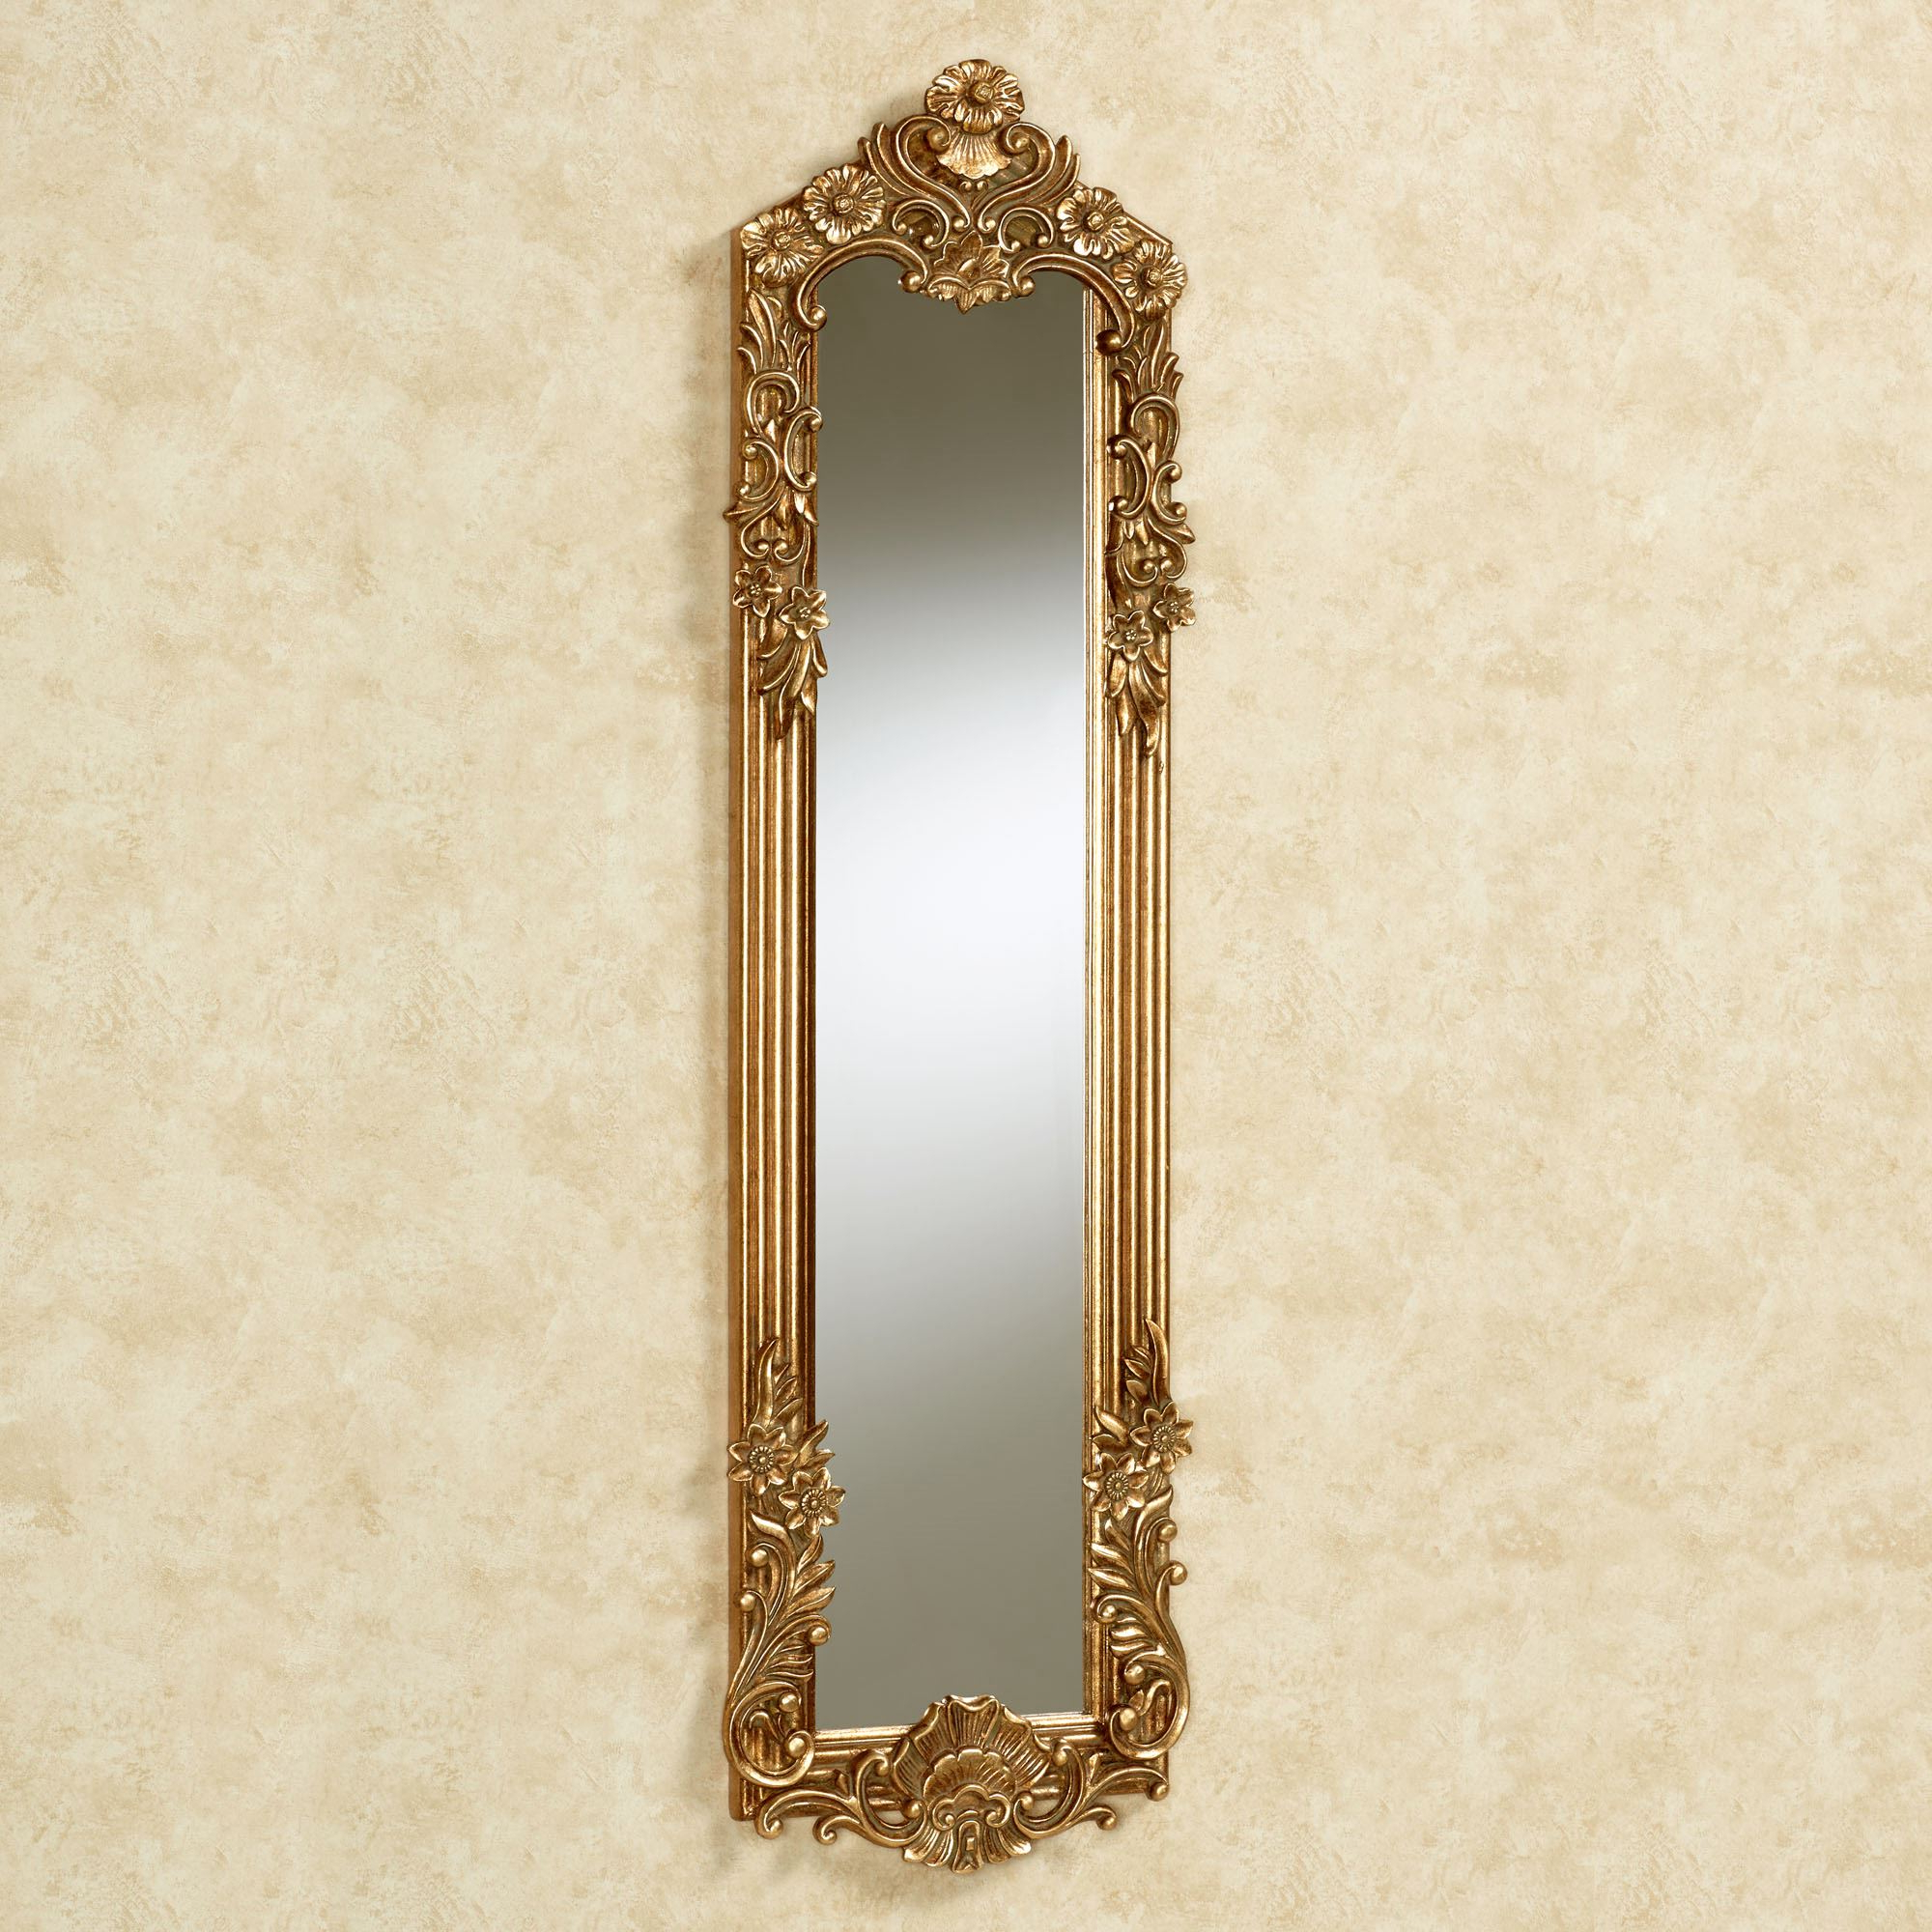 Gadsden Dark Gold Small Floral Wall Mirror Panel Throughout Most Popular Small Gold Wall Mirrors (View 9 of 20)